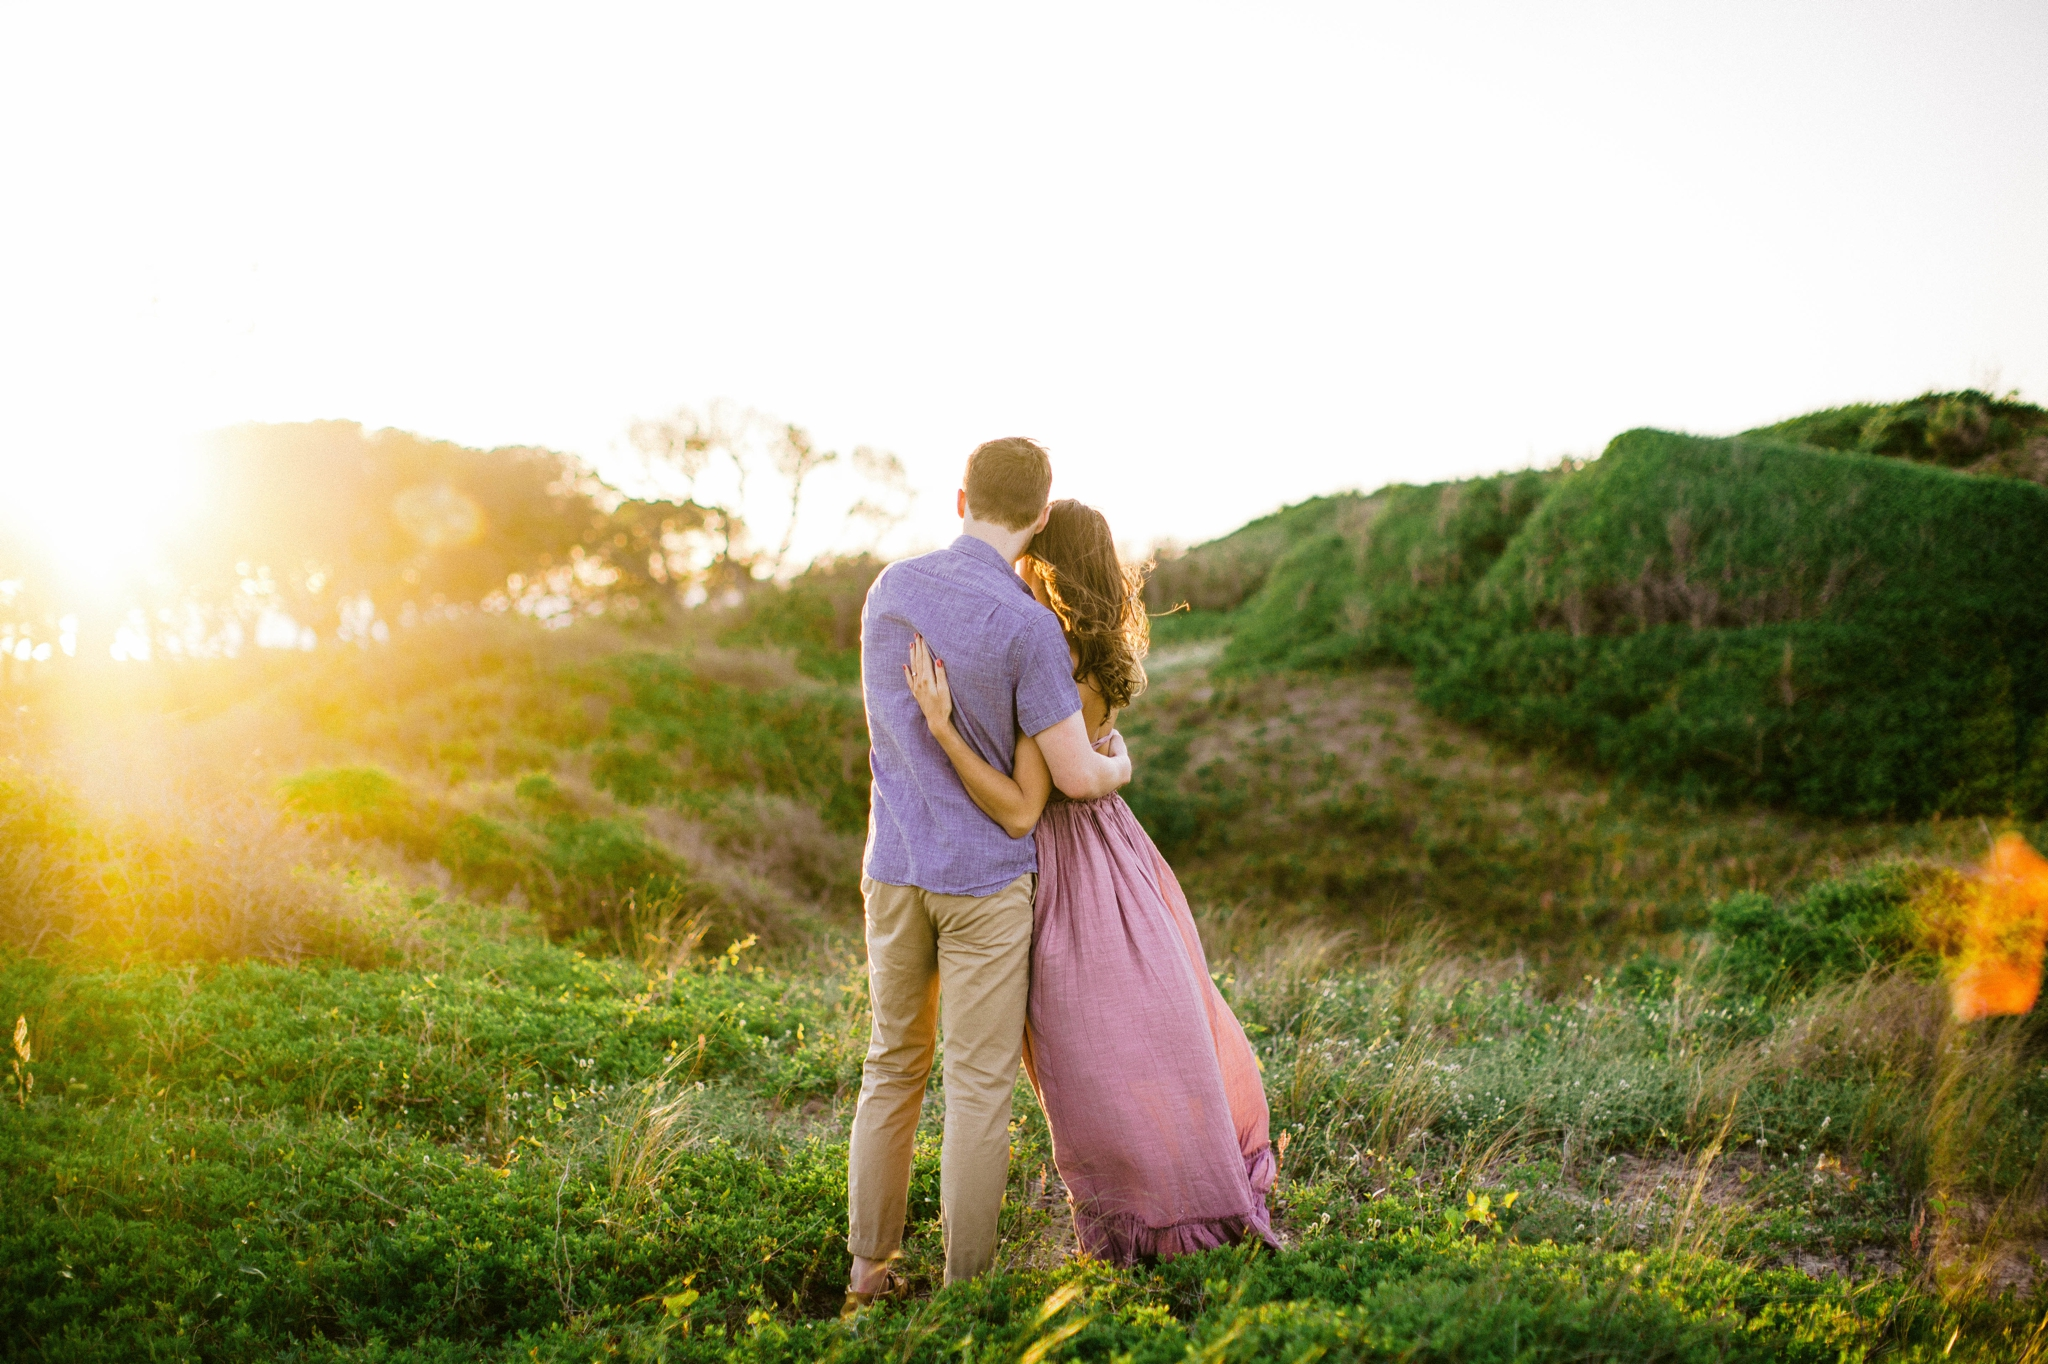 couple looking at the sunset  - in front of lush green dunes and hills with the sunset behind them - Woman is in a flowy pastel maxi dress - candid and unposed outdoor golden light session - engagement photographer in honolulu, oahu, hawaii - johanna dye photography